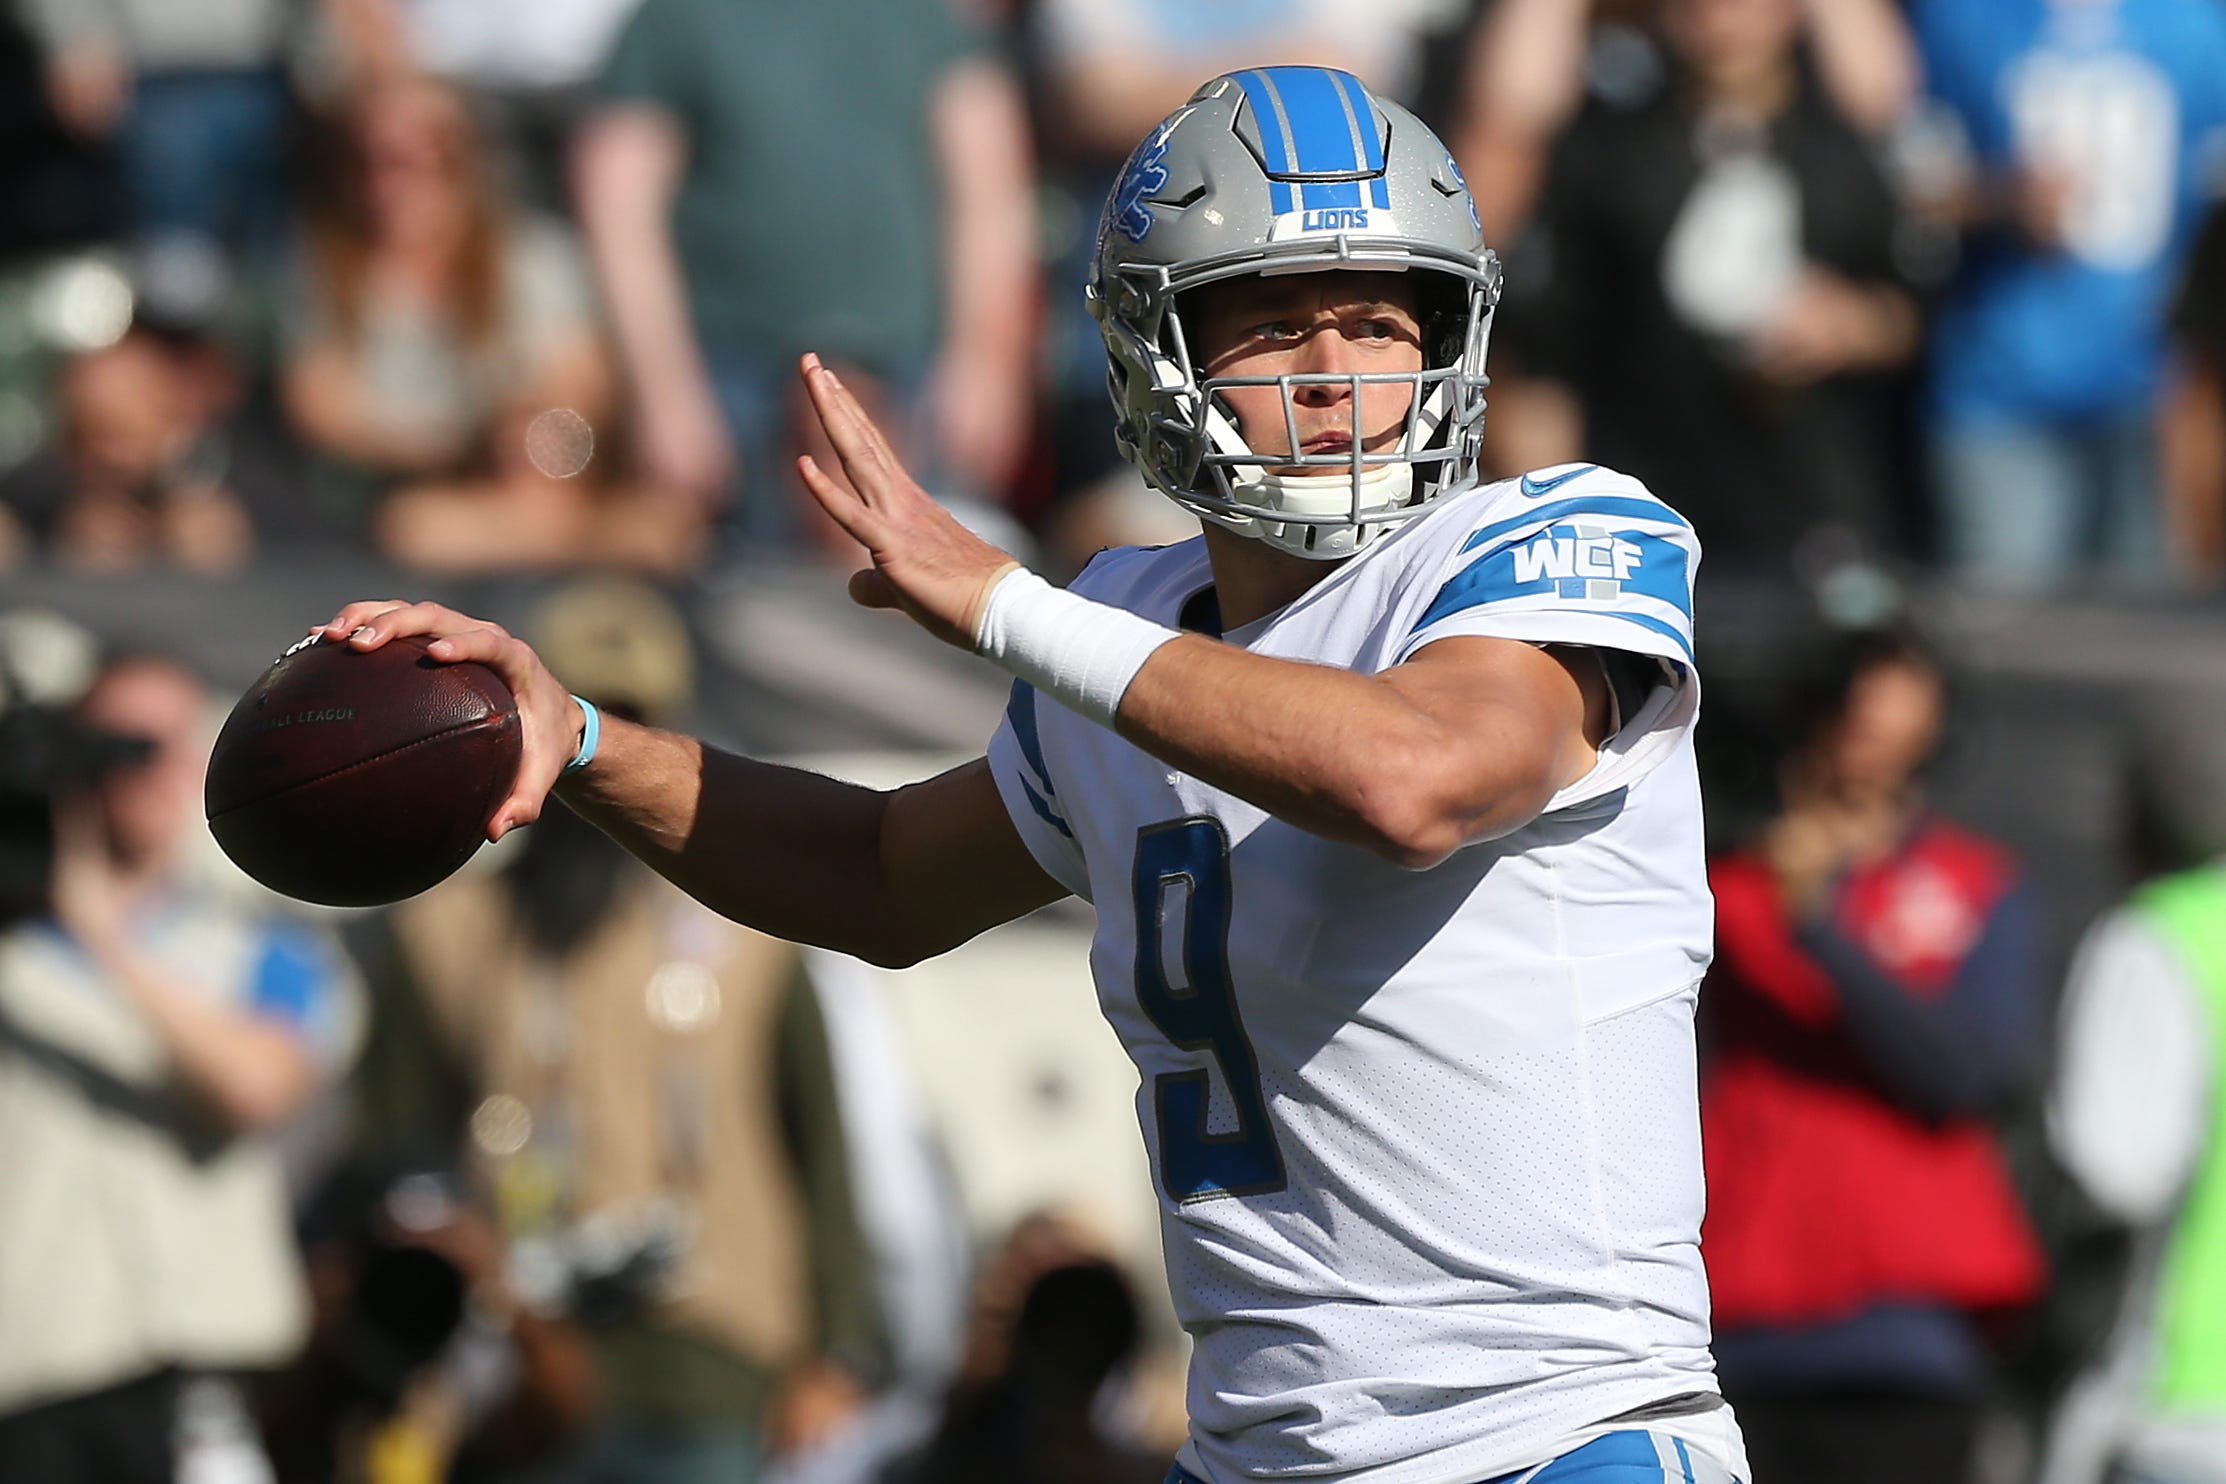 Detroit Qb Matthew Stafford Visits Family Of Lions Fans On Christmas